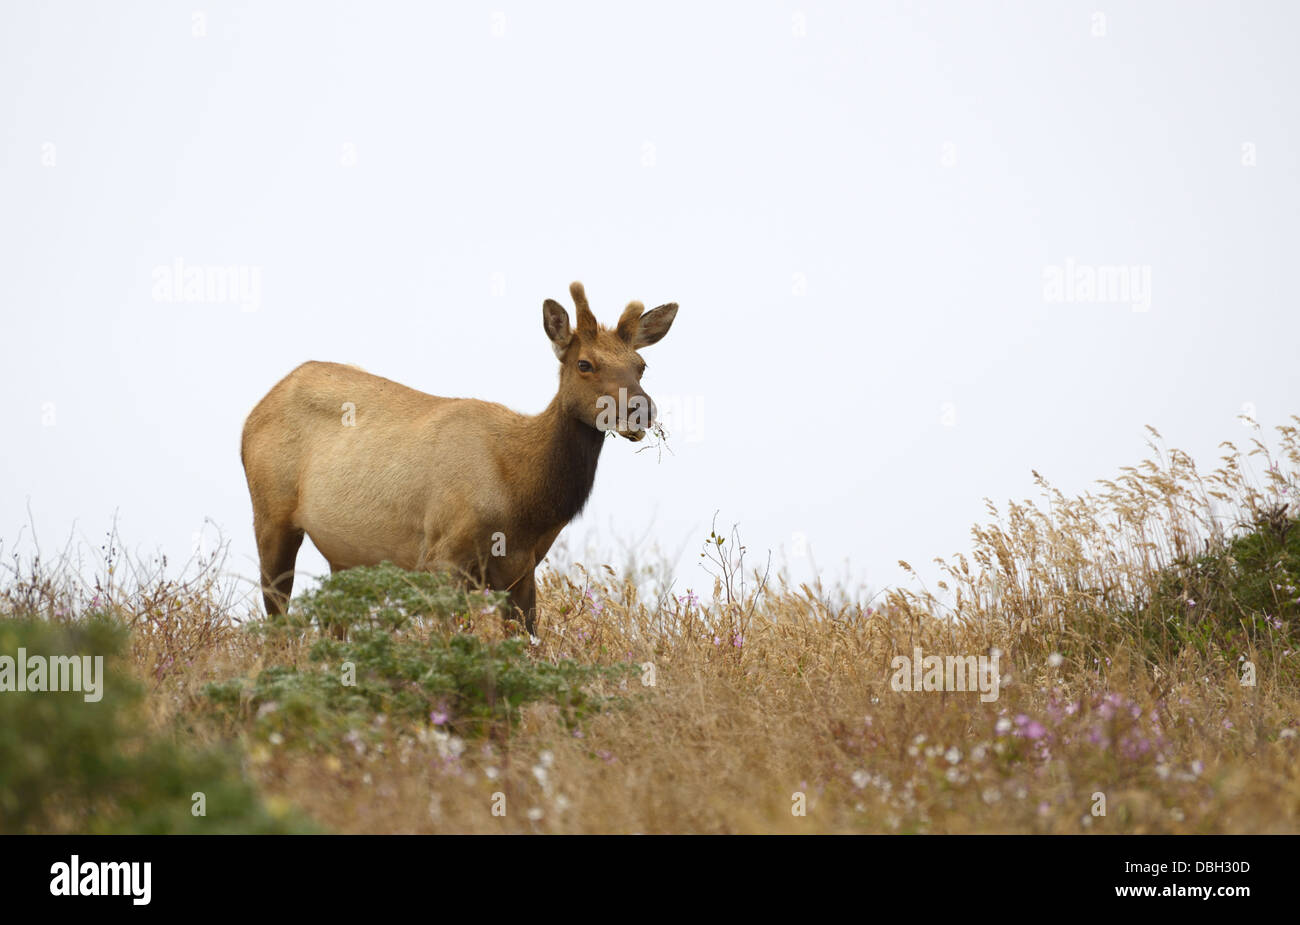 Tule elk, Cervis canadensis nannodes, Tomales Point, Point Reyes National Seashore - Stock Image